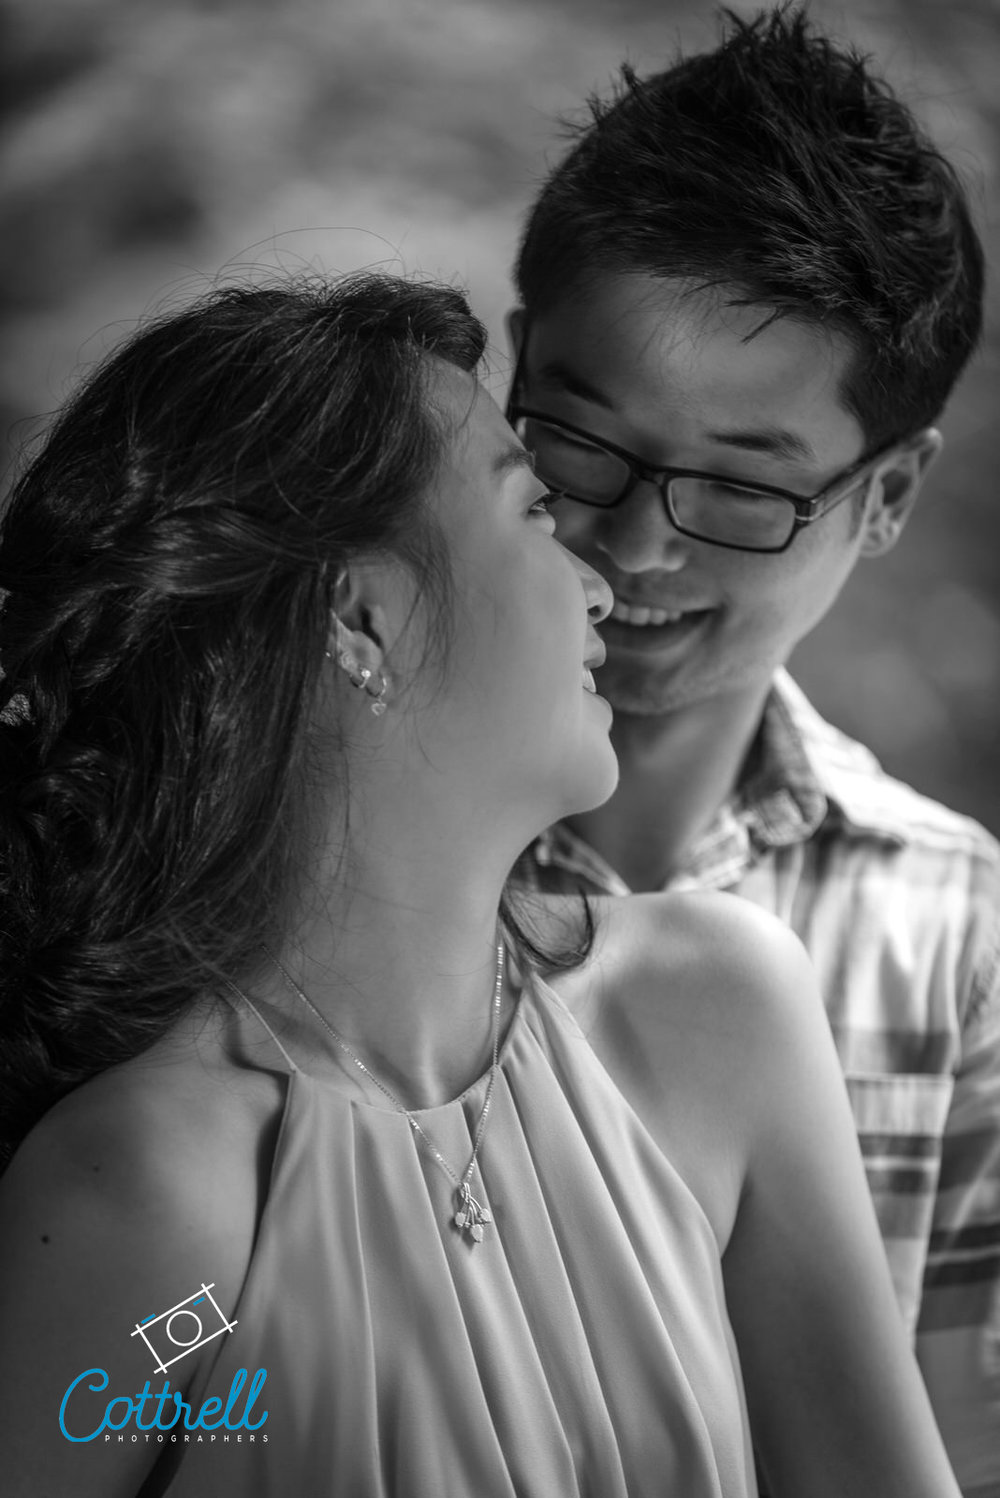 Engagement Photo Session at Smith-Gilbert Gardens, Kennesaw, Georgia